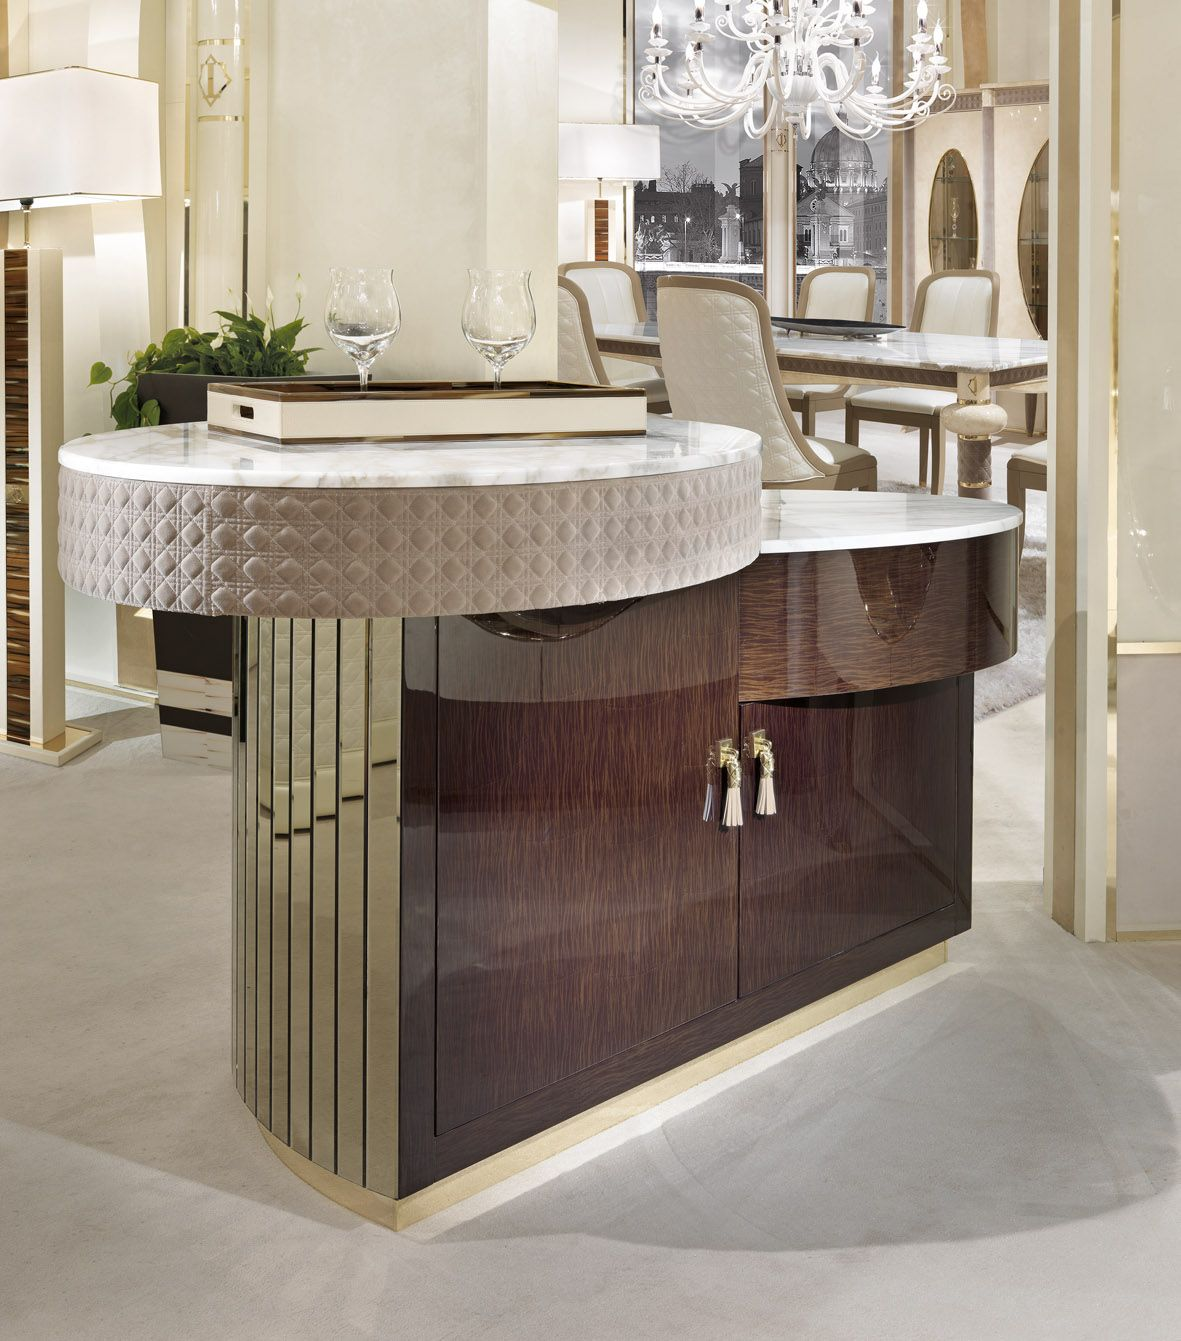 Italian Furniture For Exclusive And Modern Design Modern Bedroom Design Italian Furniture Luxury Dining Room